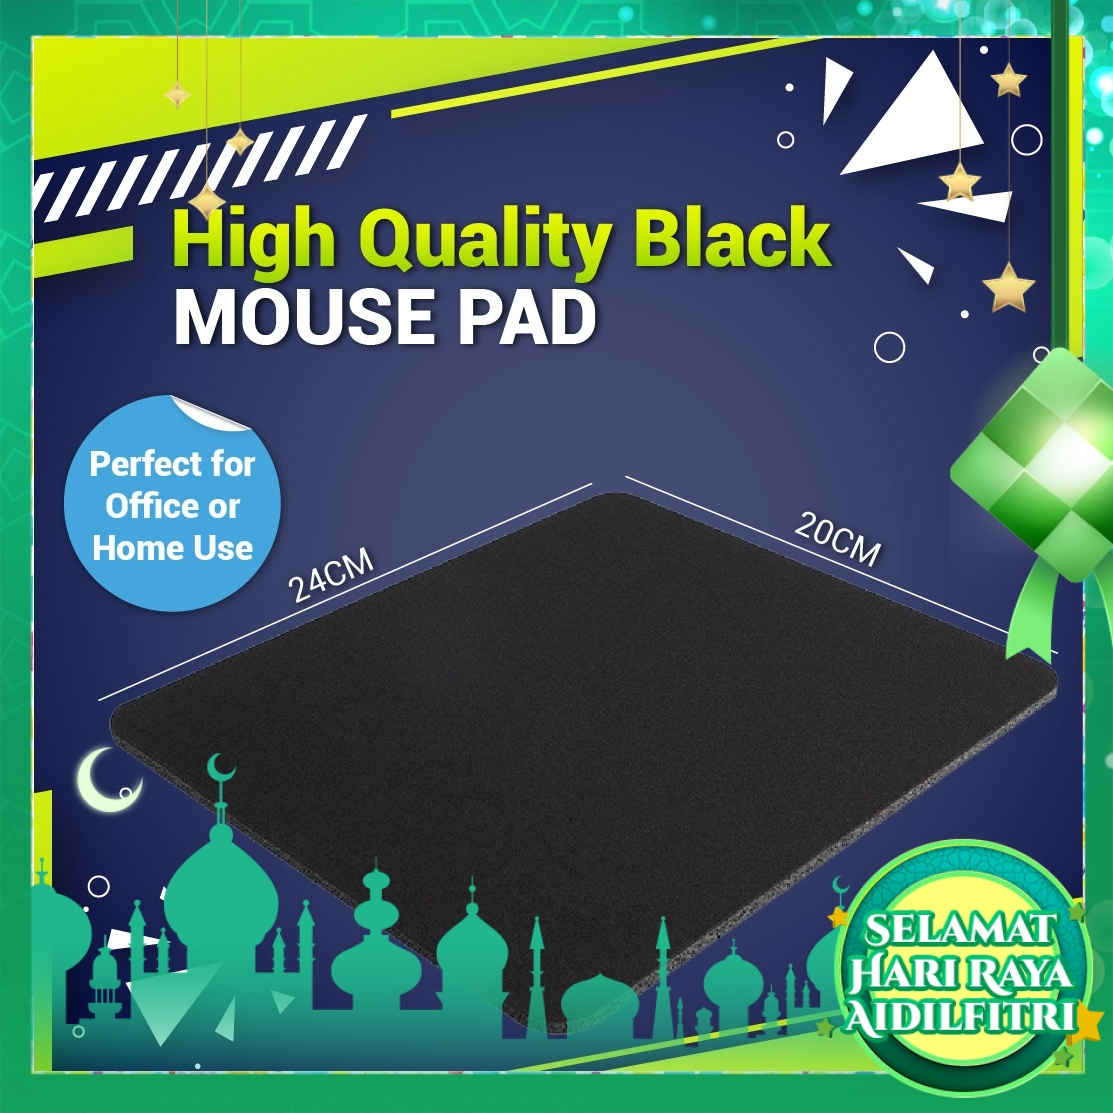 High Quality Black Mouse Pad - Perfect for Office or Home Use